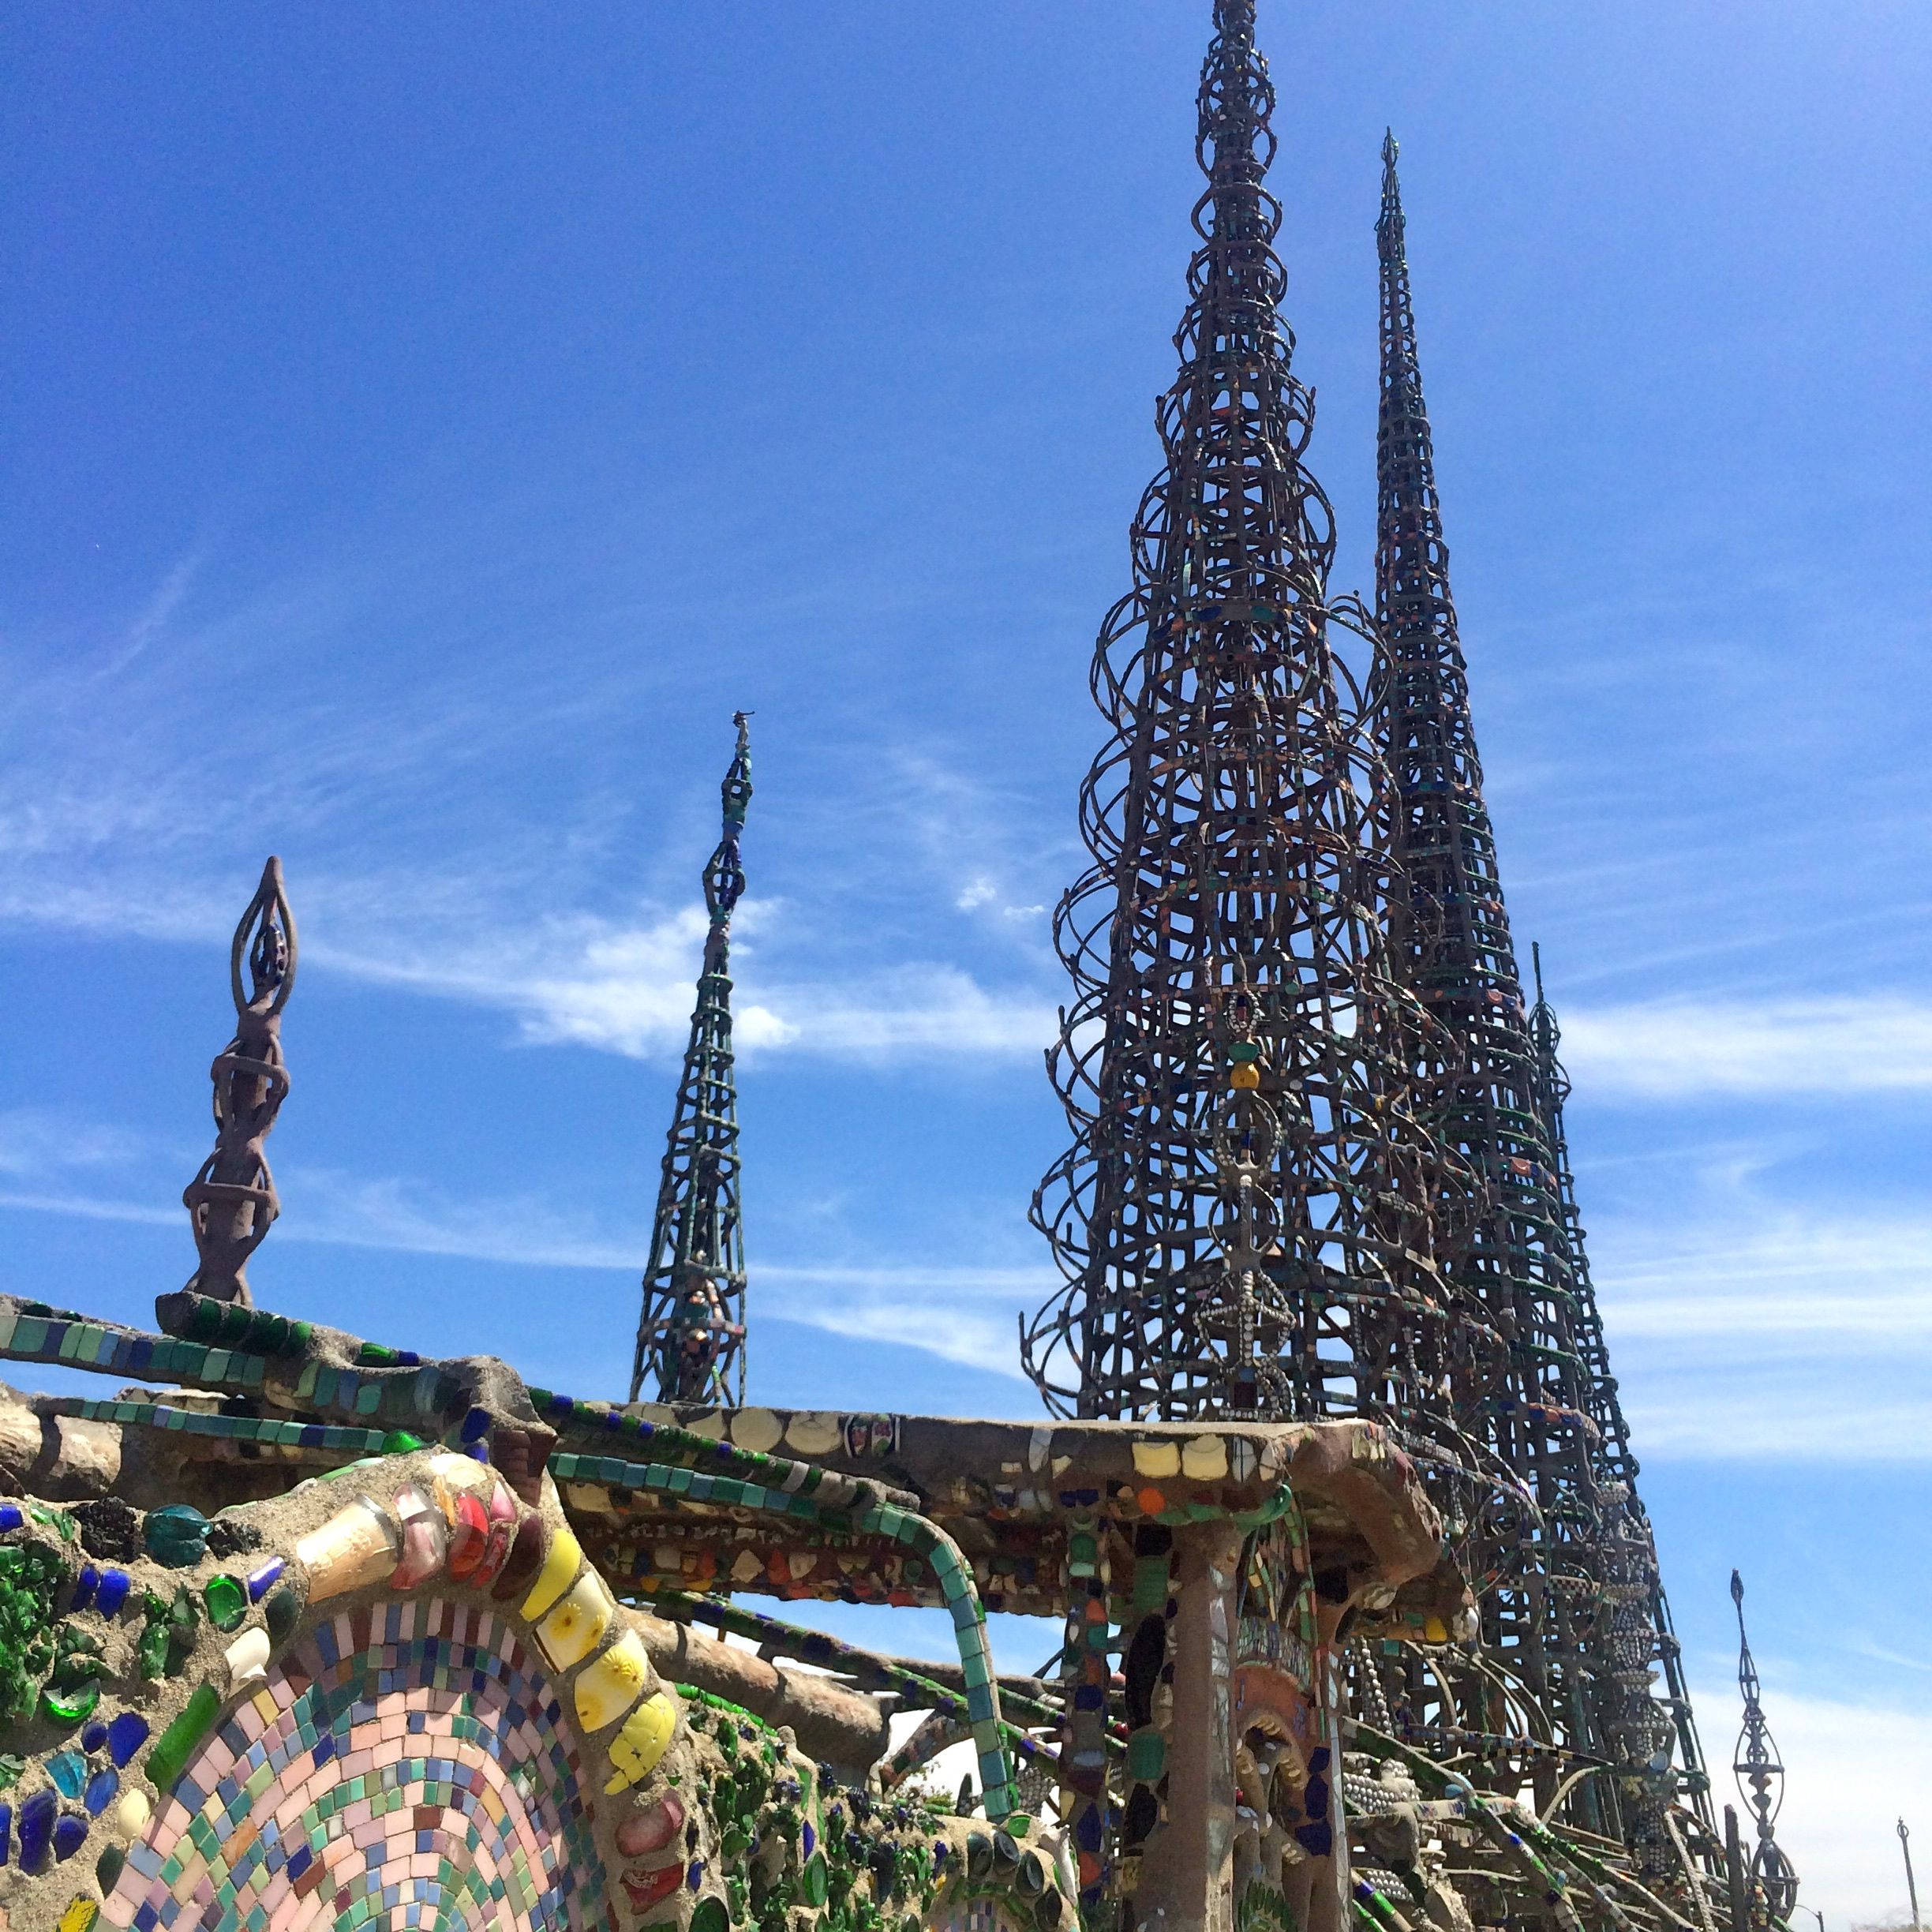 Watts Towers, built between 1921-1954 (photo by Nikki Kreuzer)